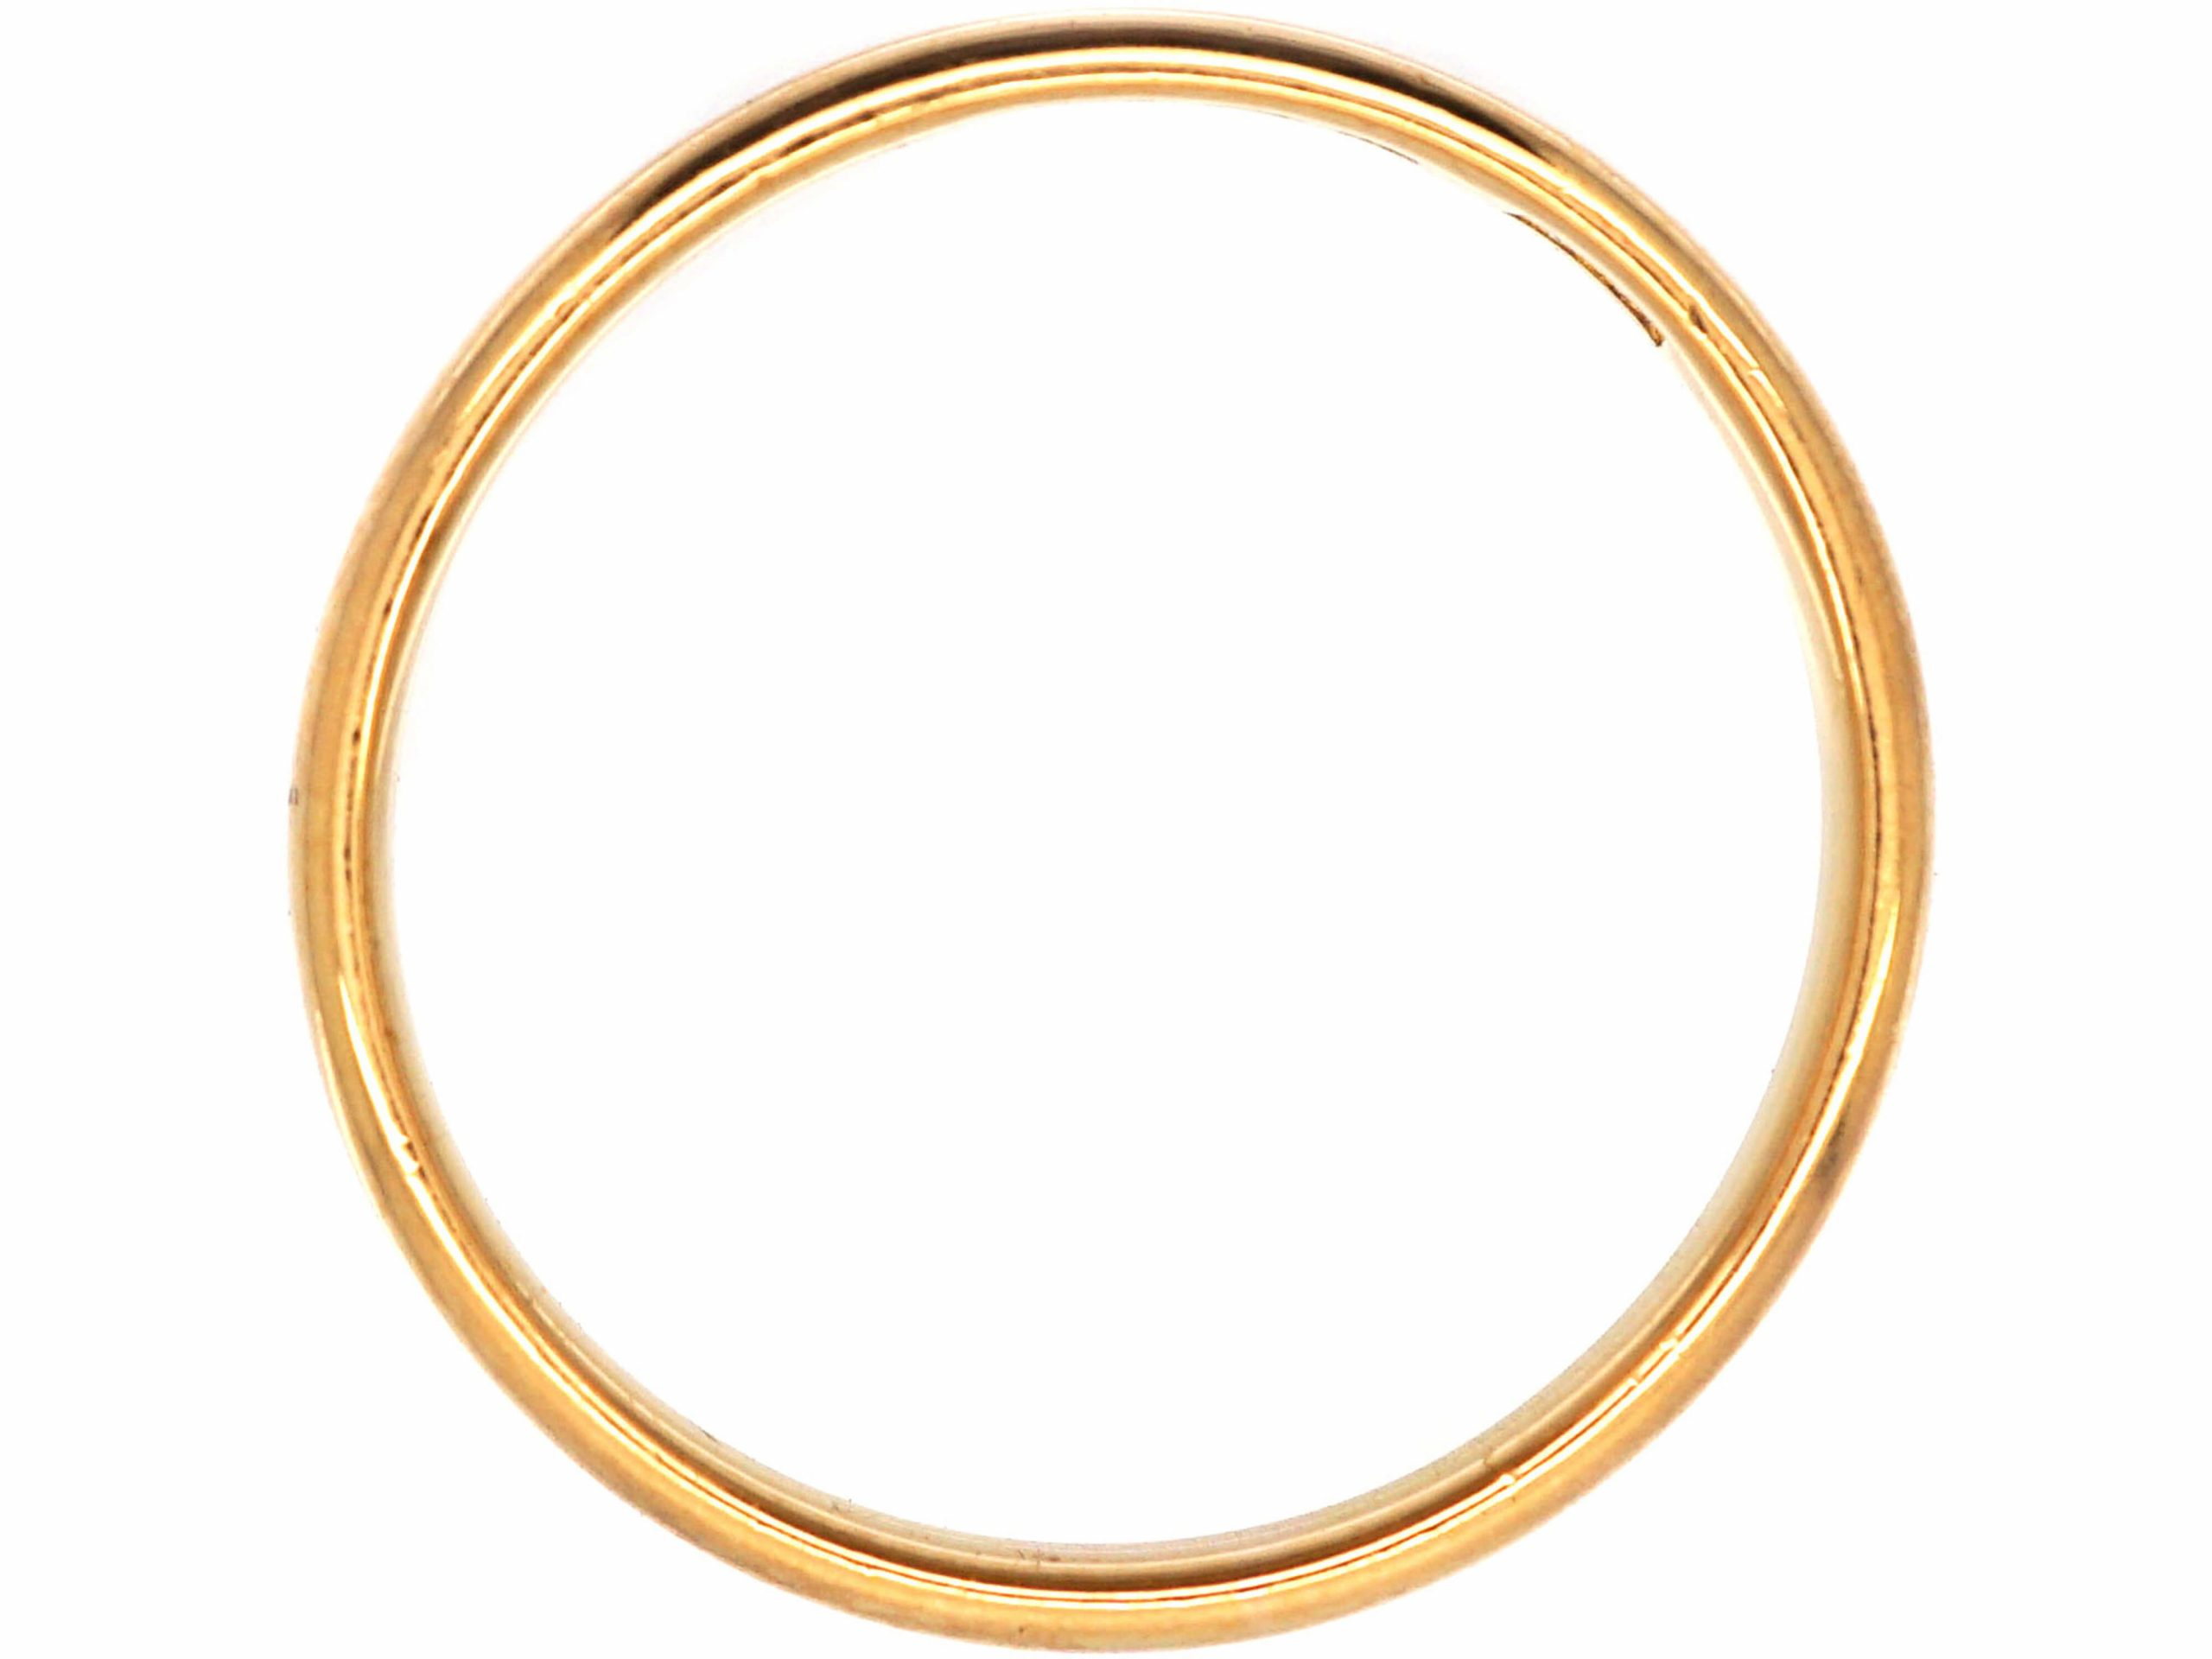 22ct Gold Wedding Band Assayed in 1938